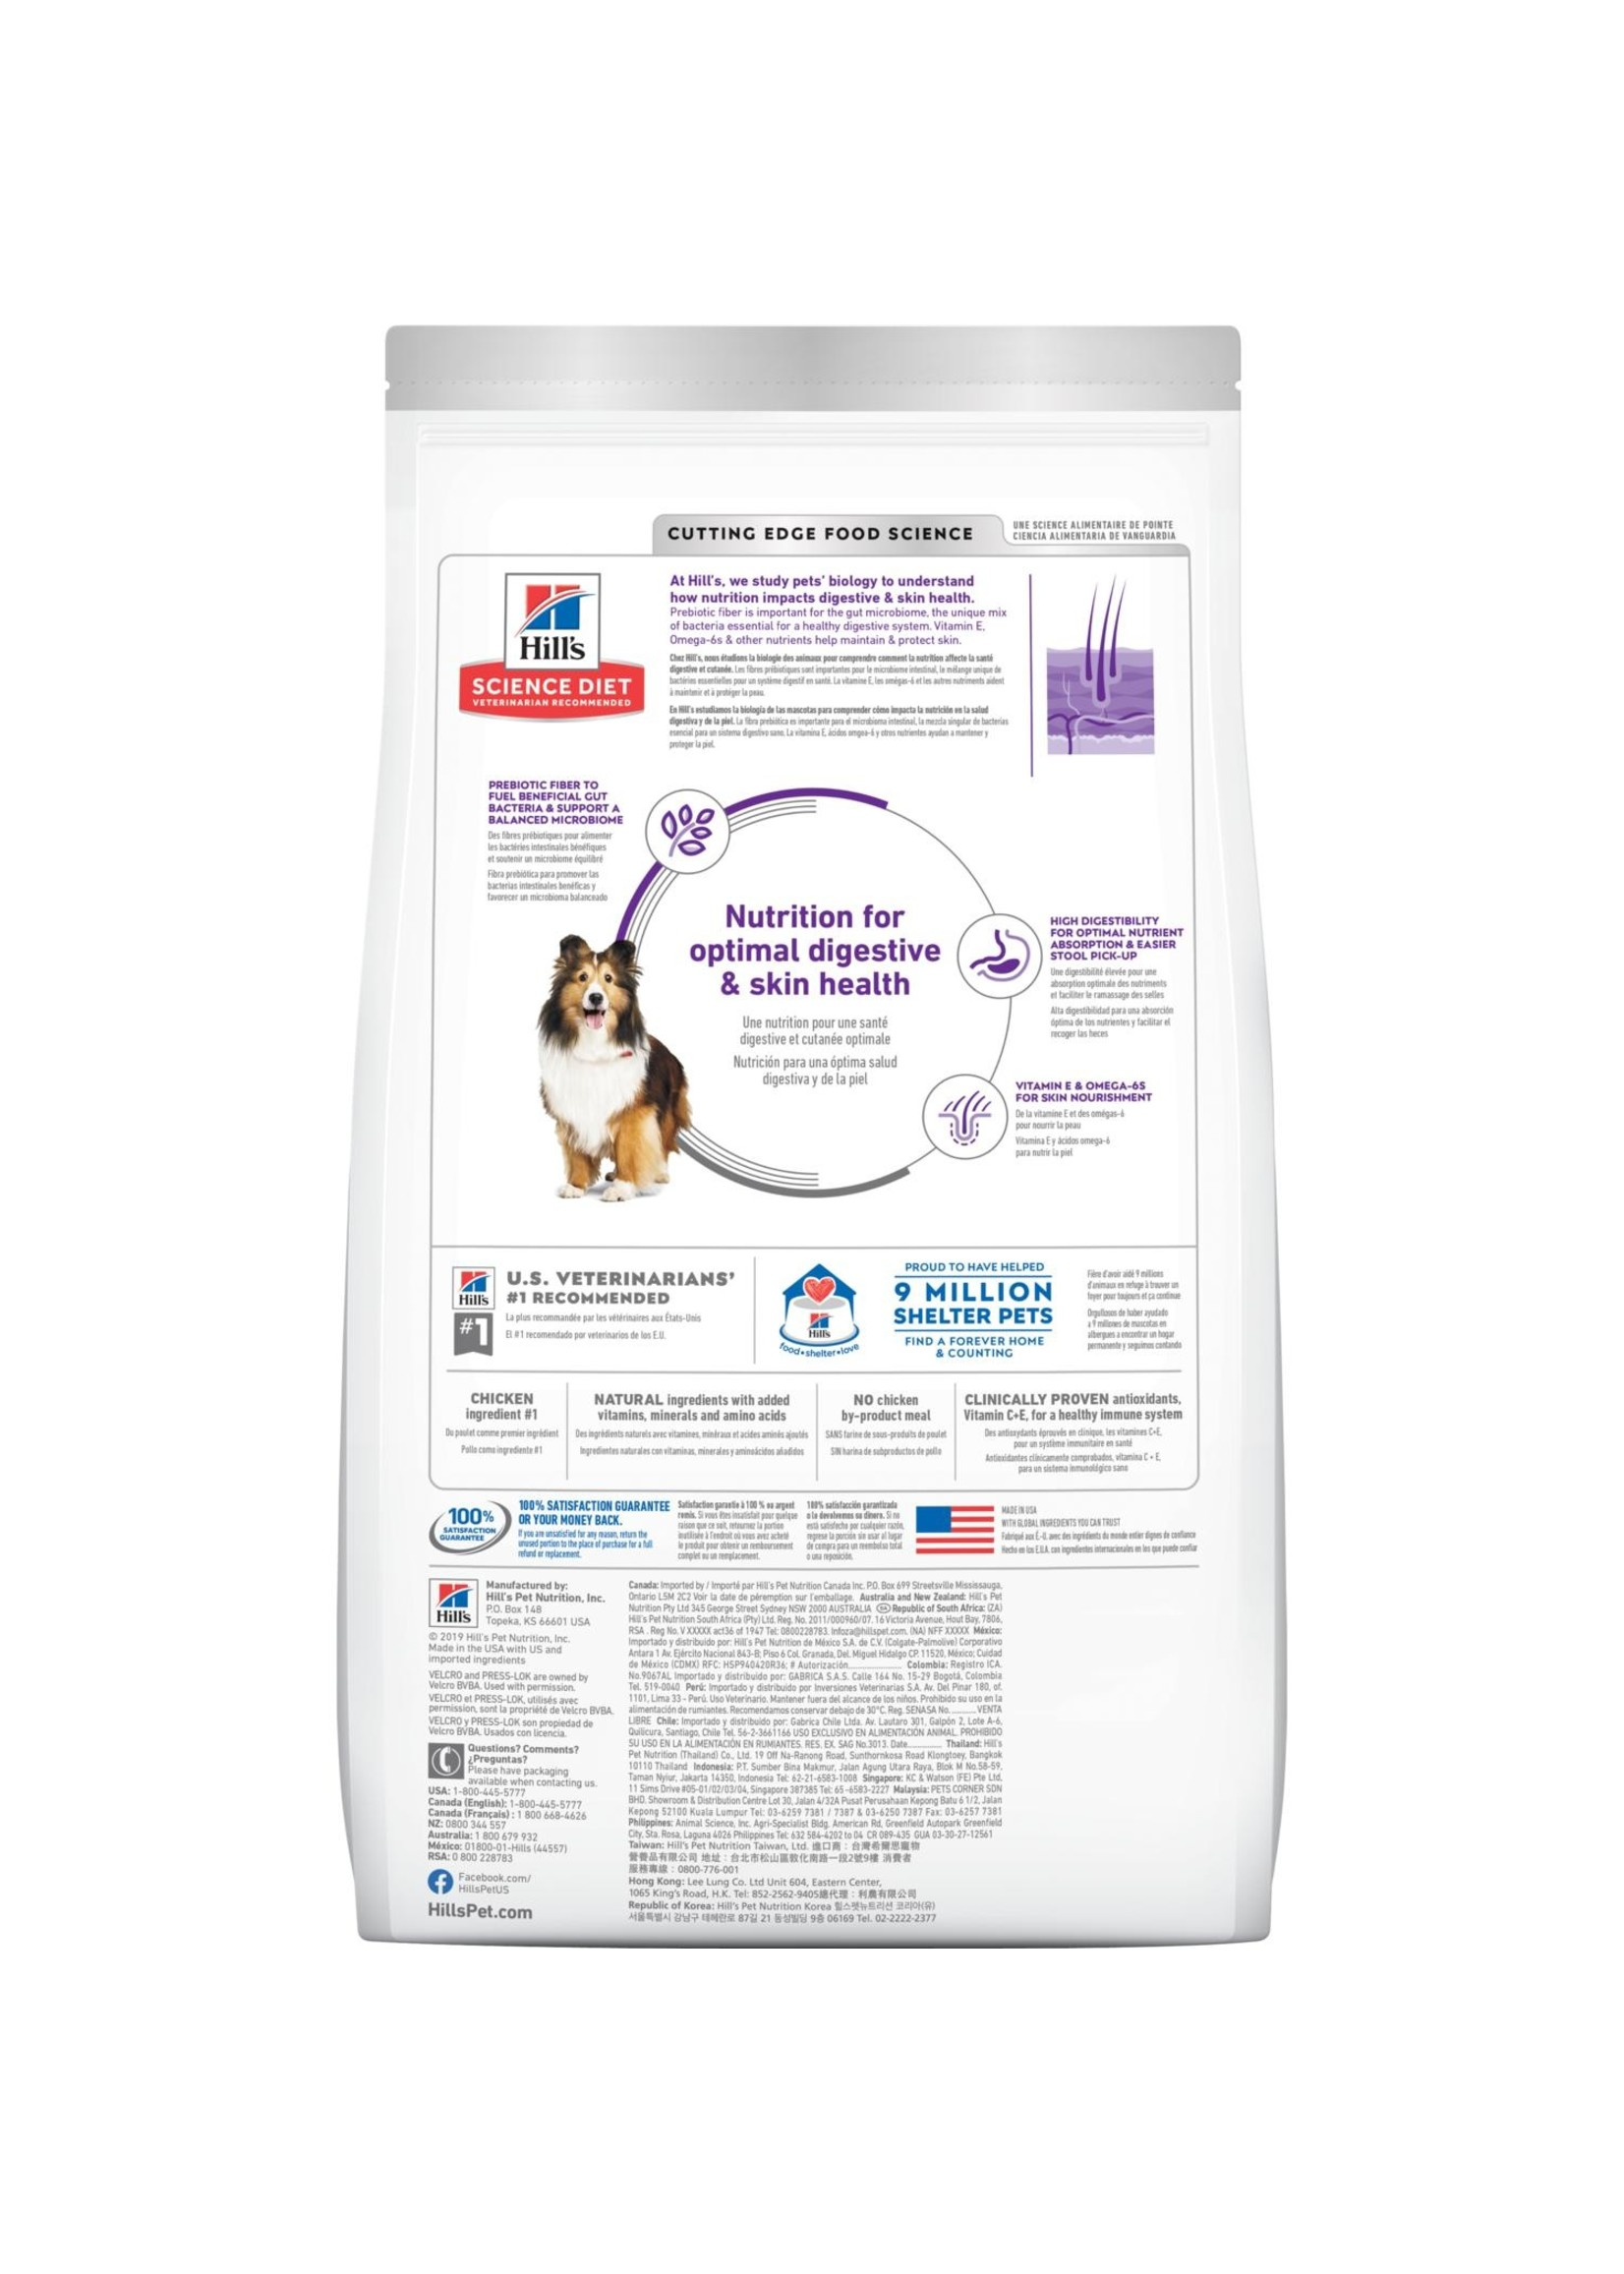 Hill's Science Diet Hill's Science Diet Sensitive Stomach & Skin Dog Food15.5lb Bag